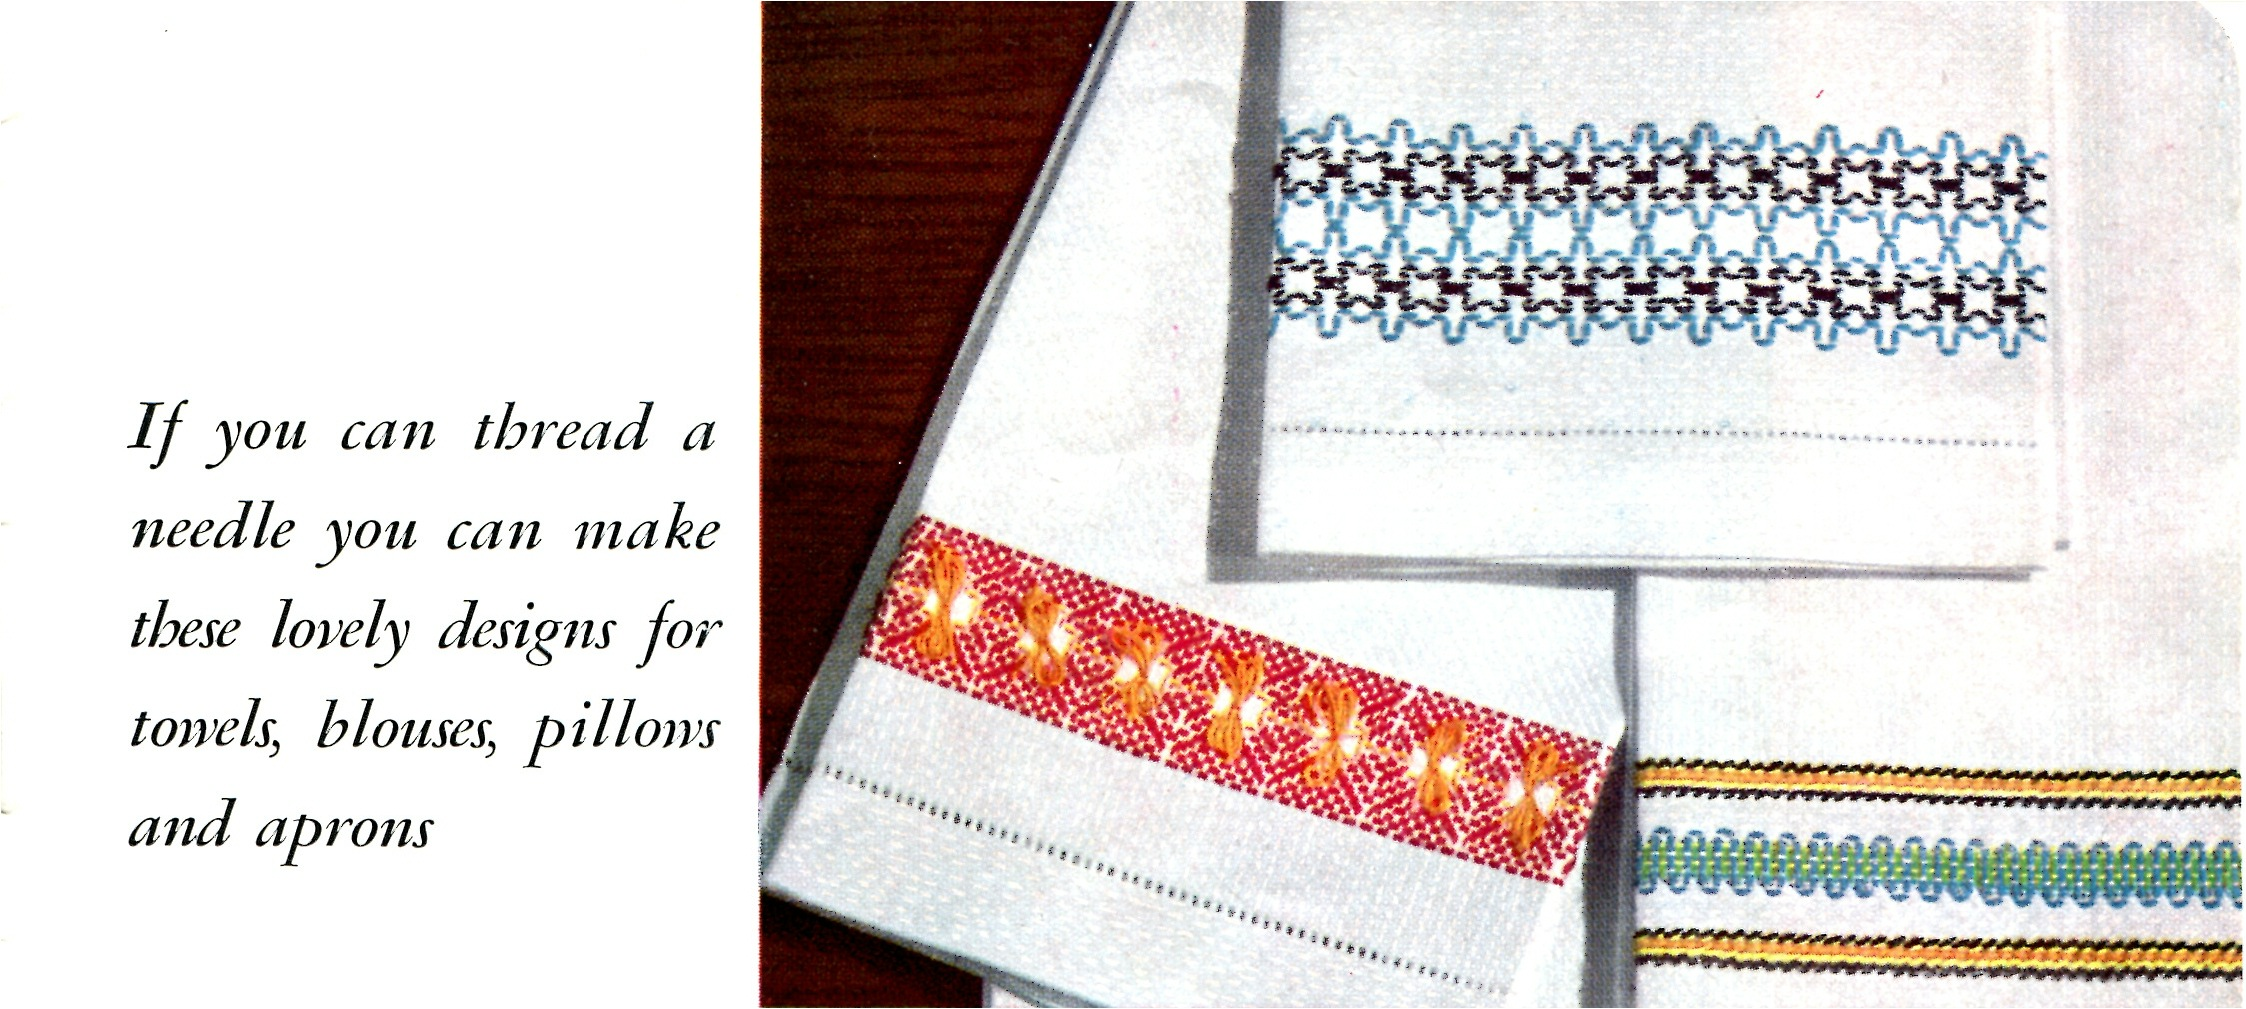 How To Do Swedish Huck Weaving Embroidery Vintage Crafts And More